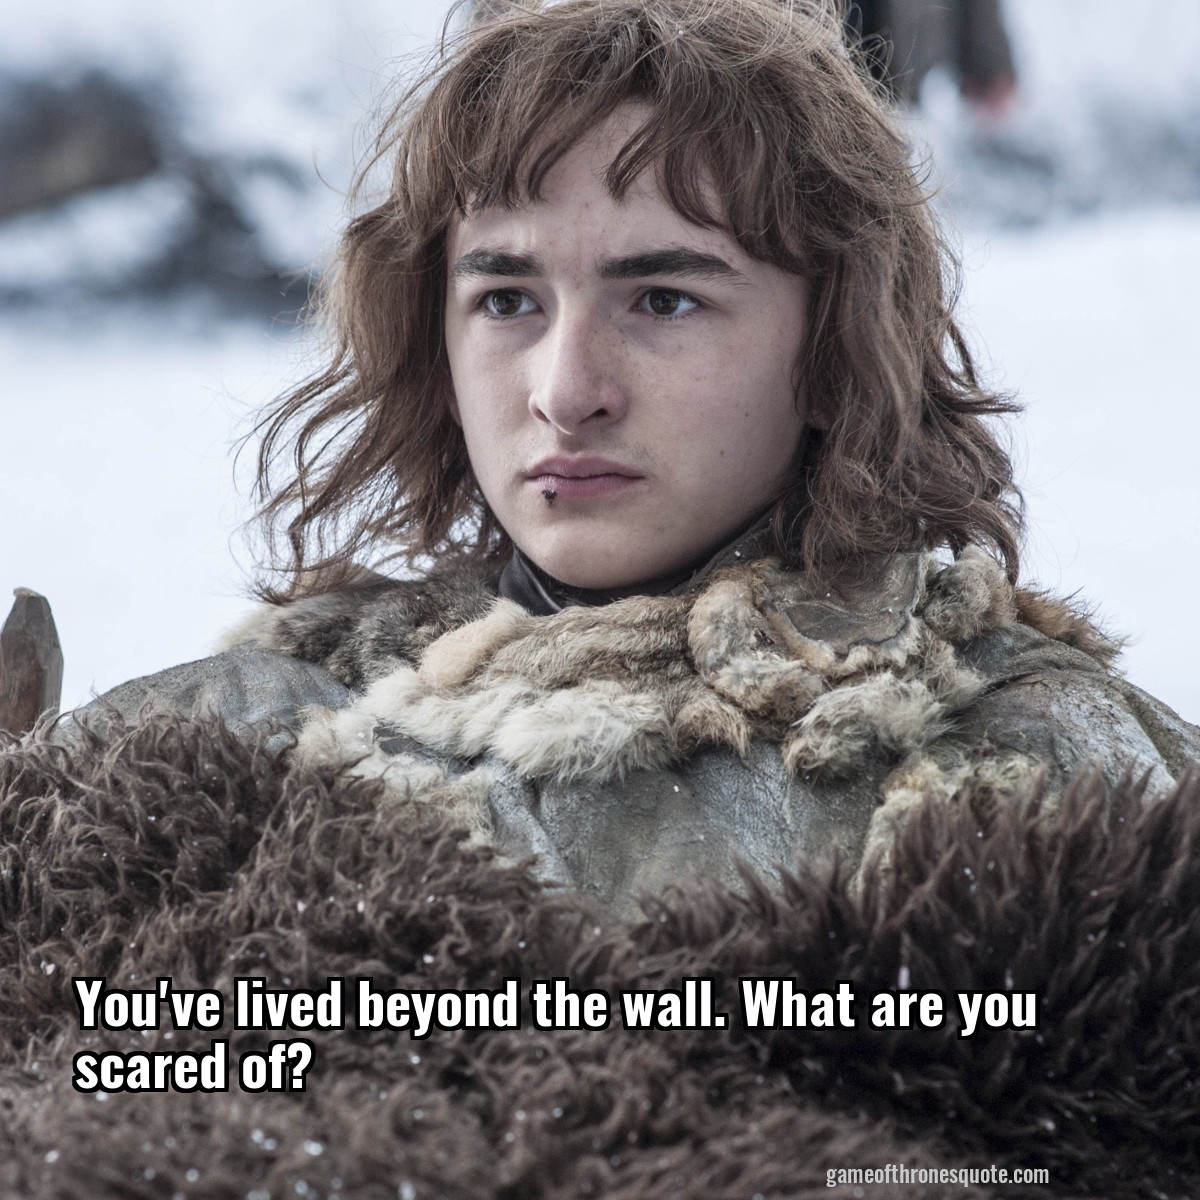 You've lived beyond the wall. What are you scared of?